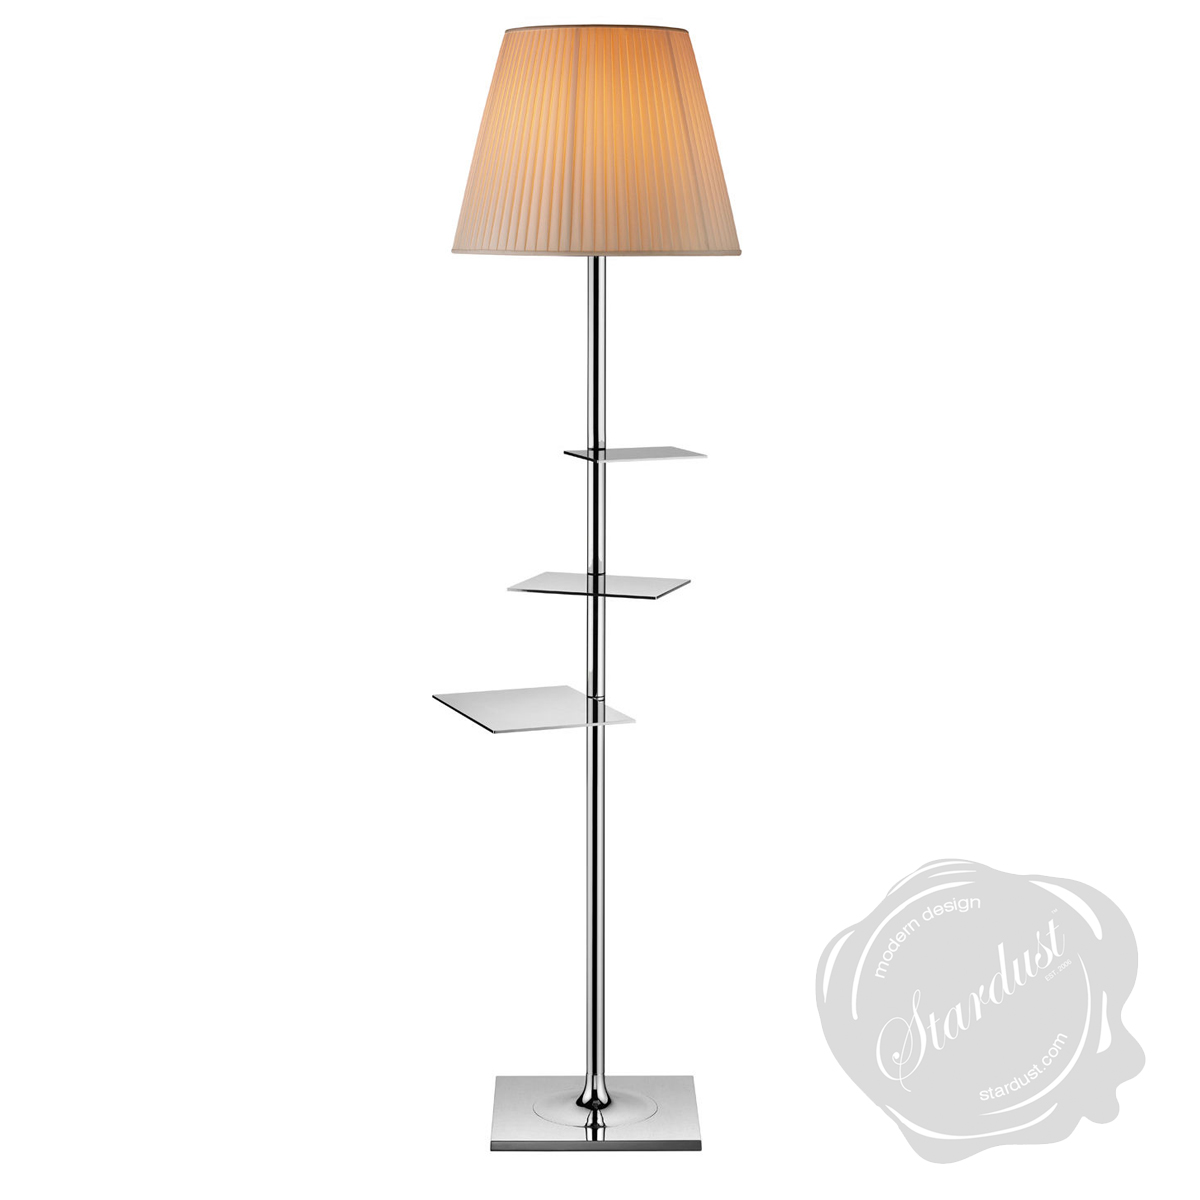 bibliotheque nationale floor lamp by flos lighting. Black Bedroom Furniture Sets. Home Design Ideas